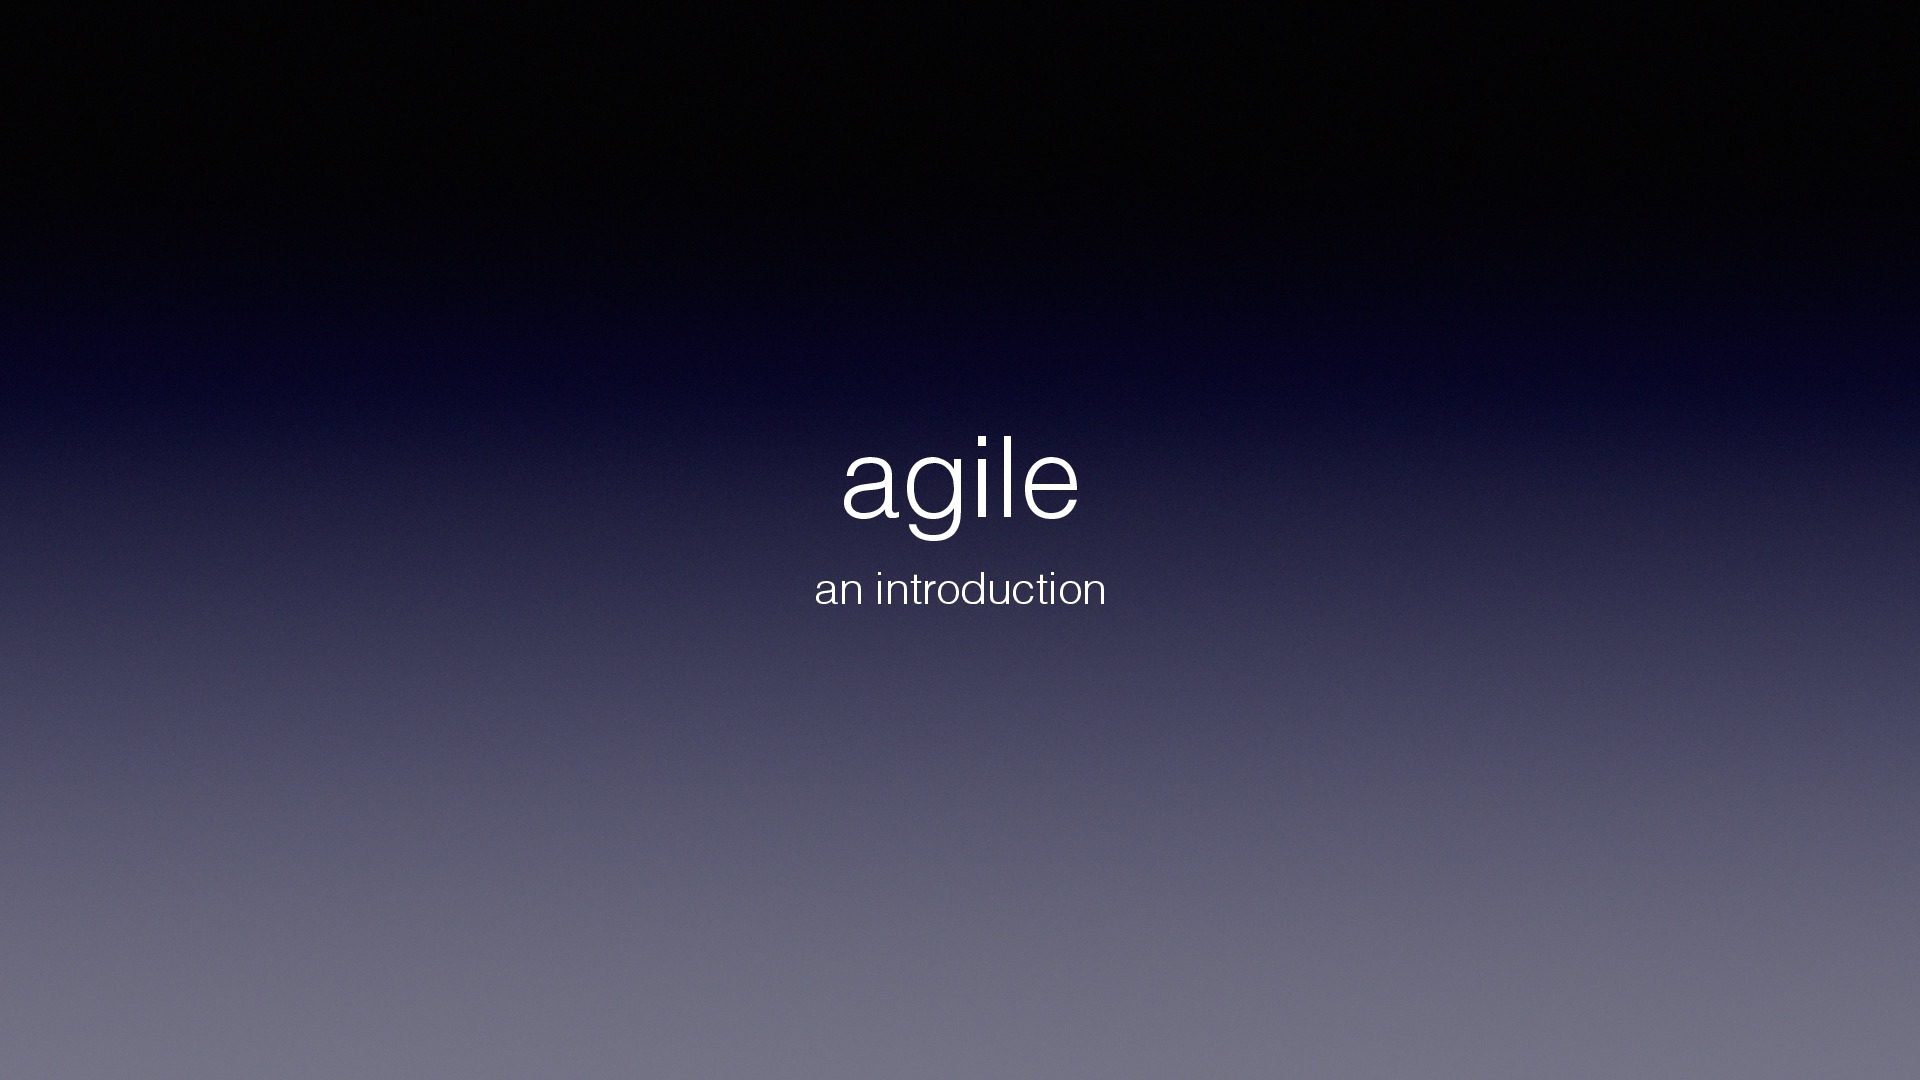 agile an introduction